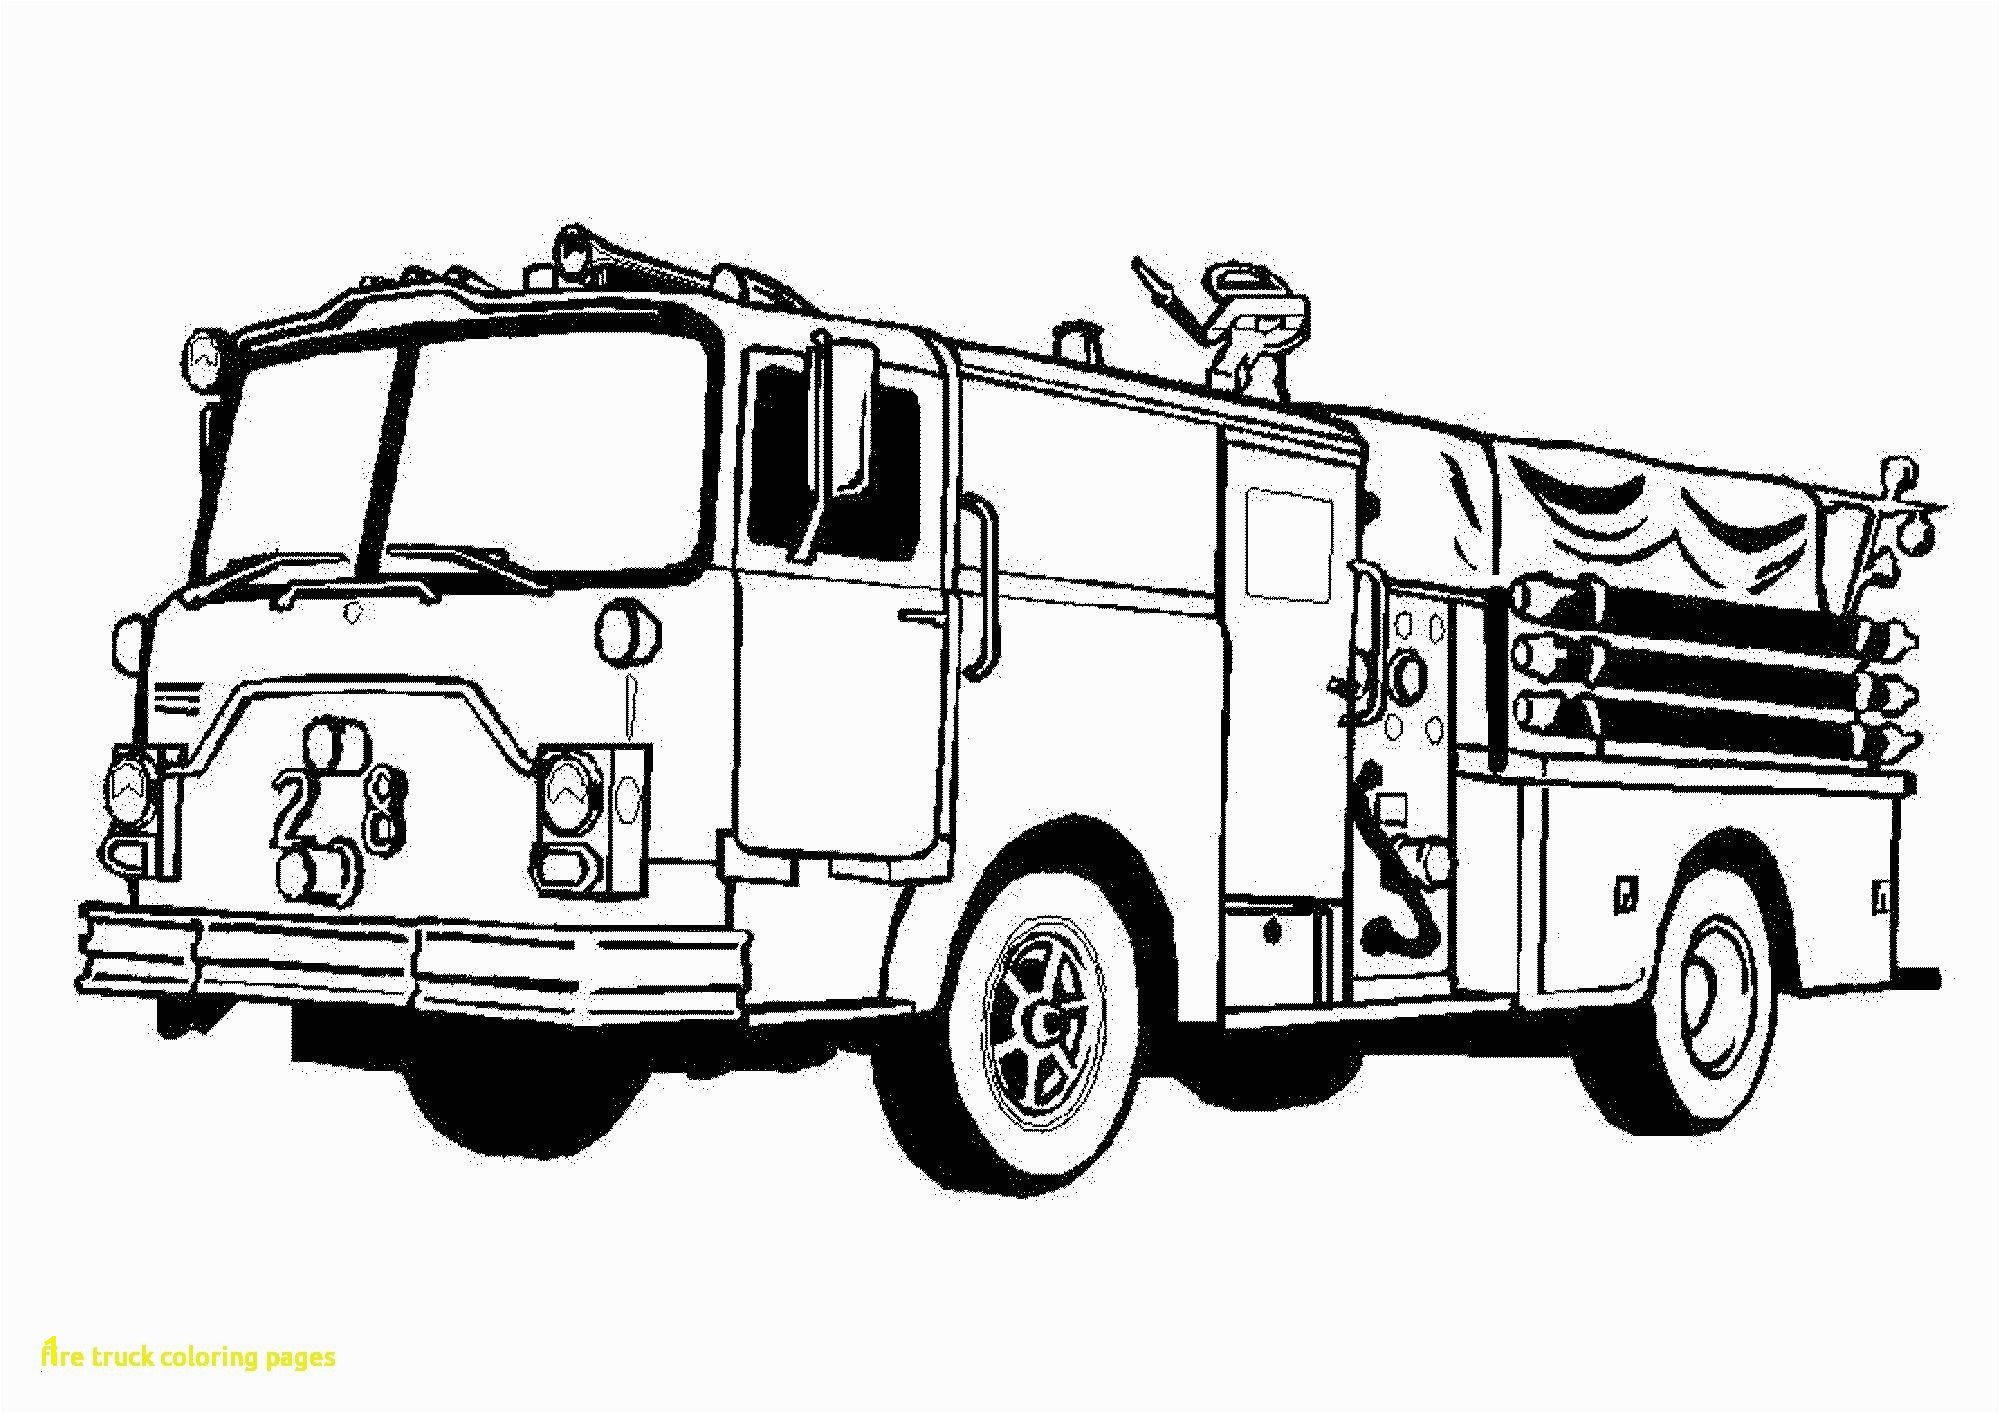 Fire Safety Coloring Pages Inspirational Coloring Book and Pages Fire Truck Coloring Pages Gif Cartoon for